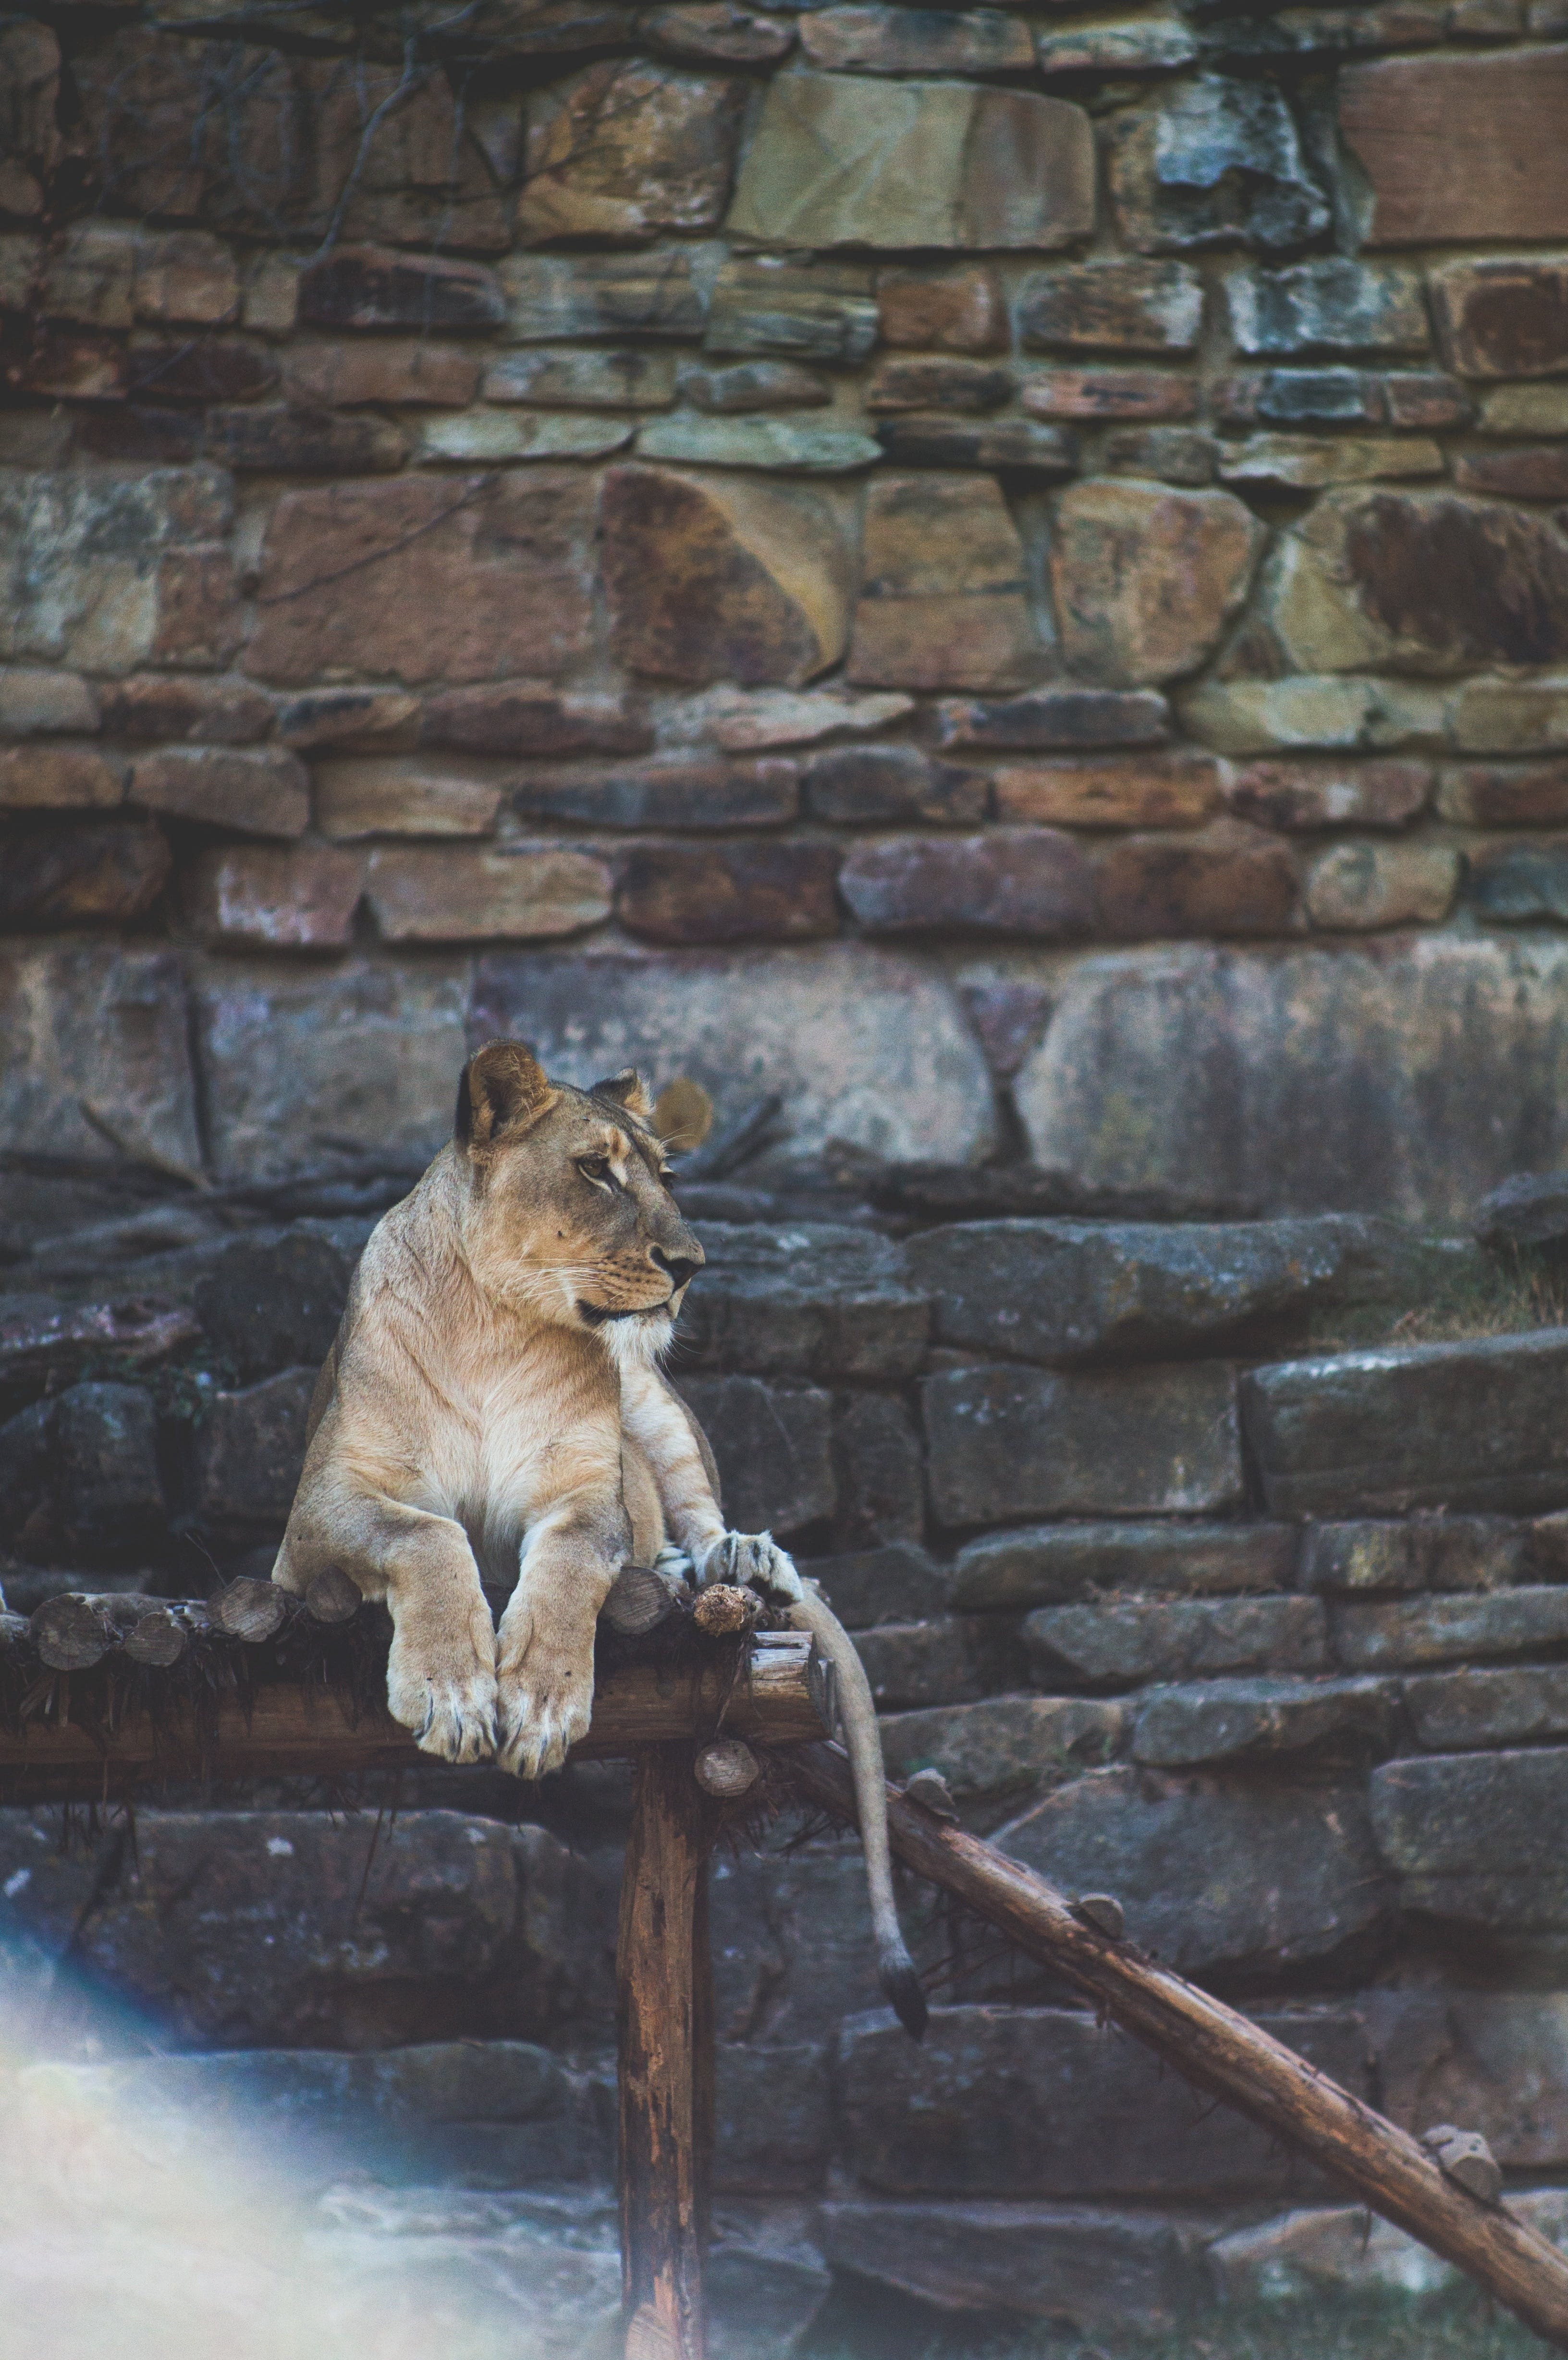 Brown Tiger Sitting on Gray and Brown Rock Formation at Daytime